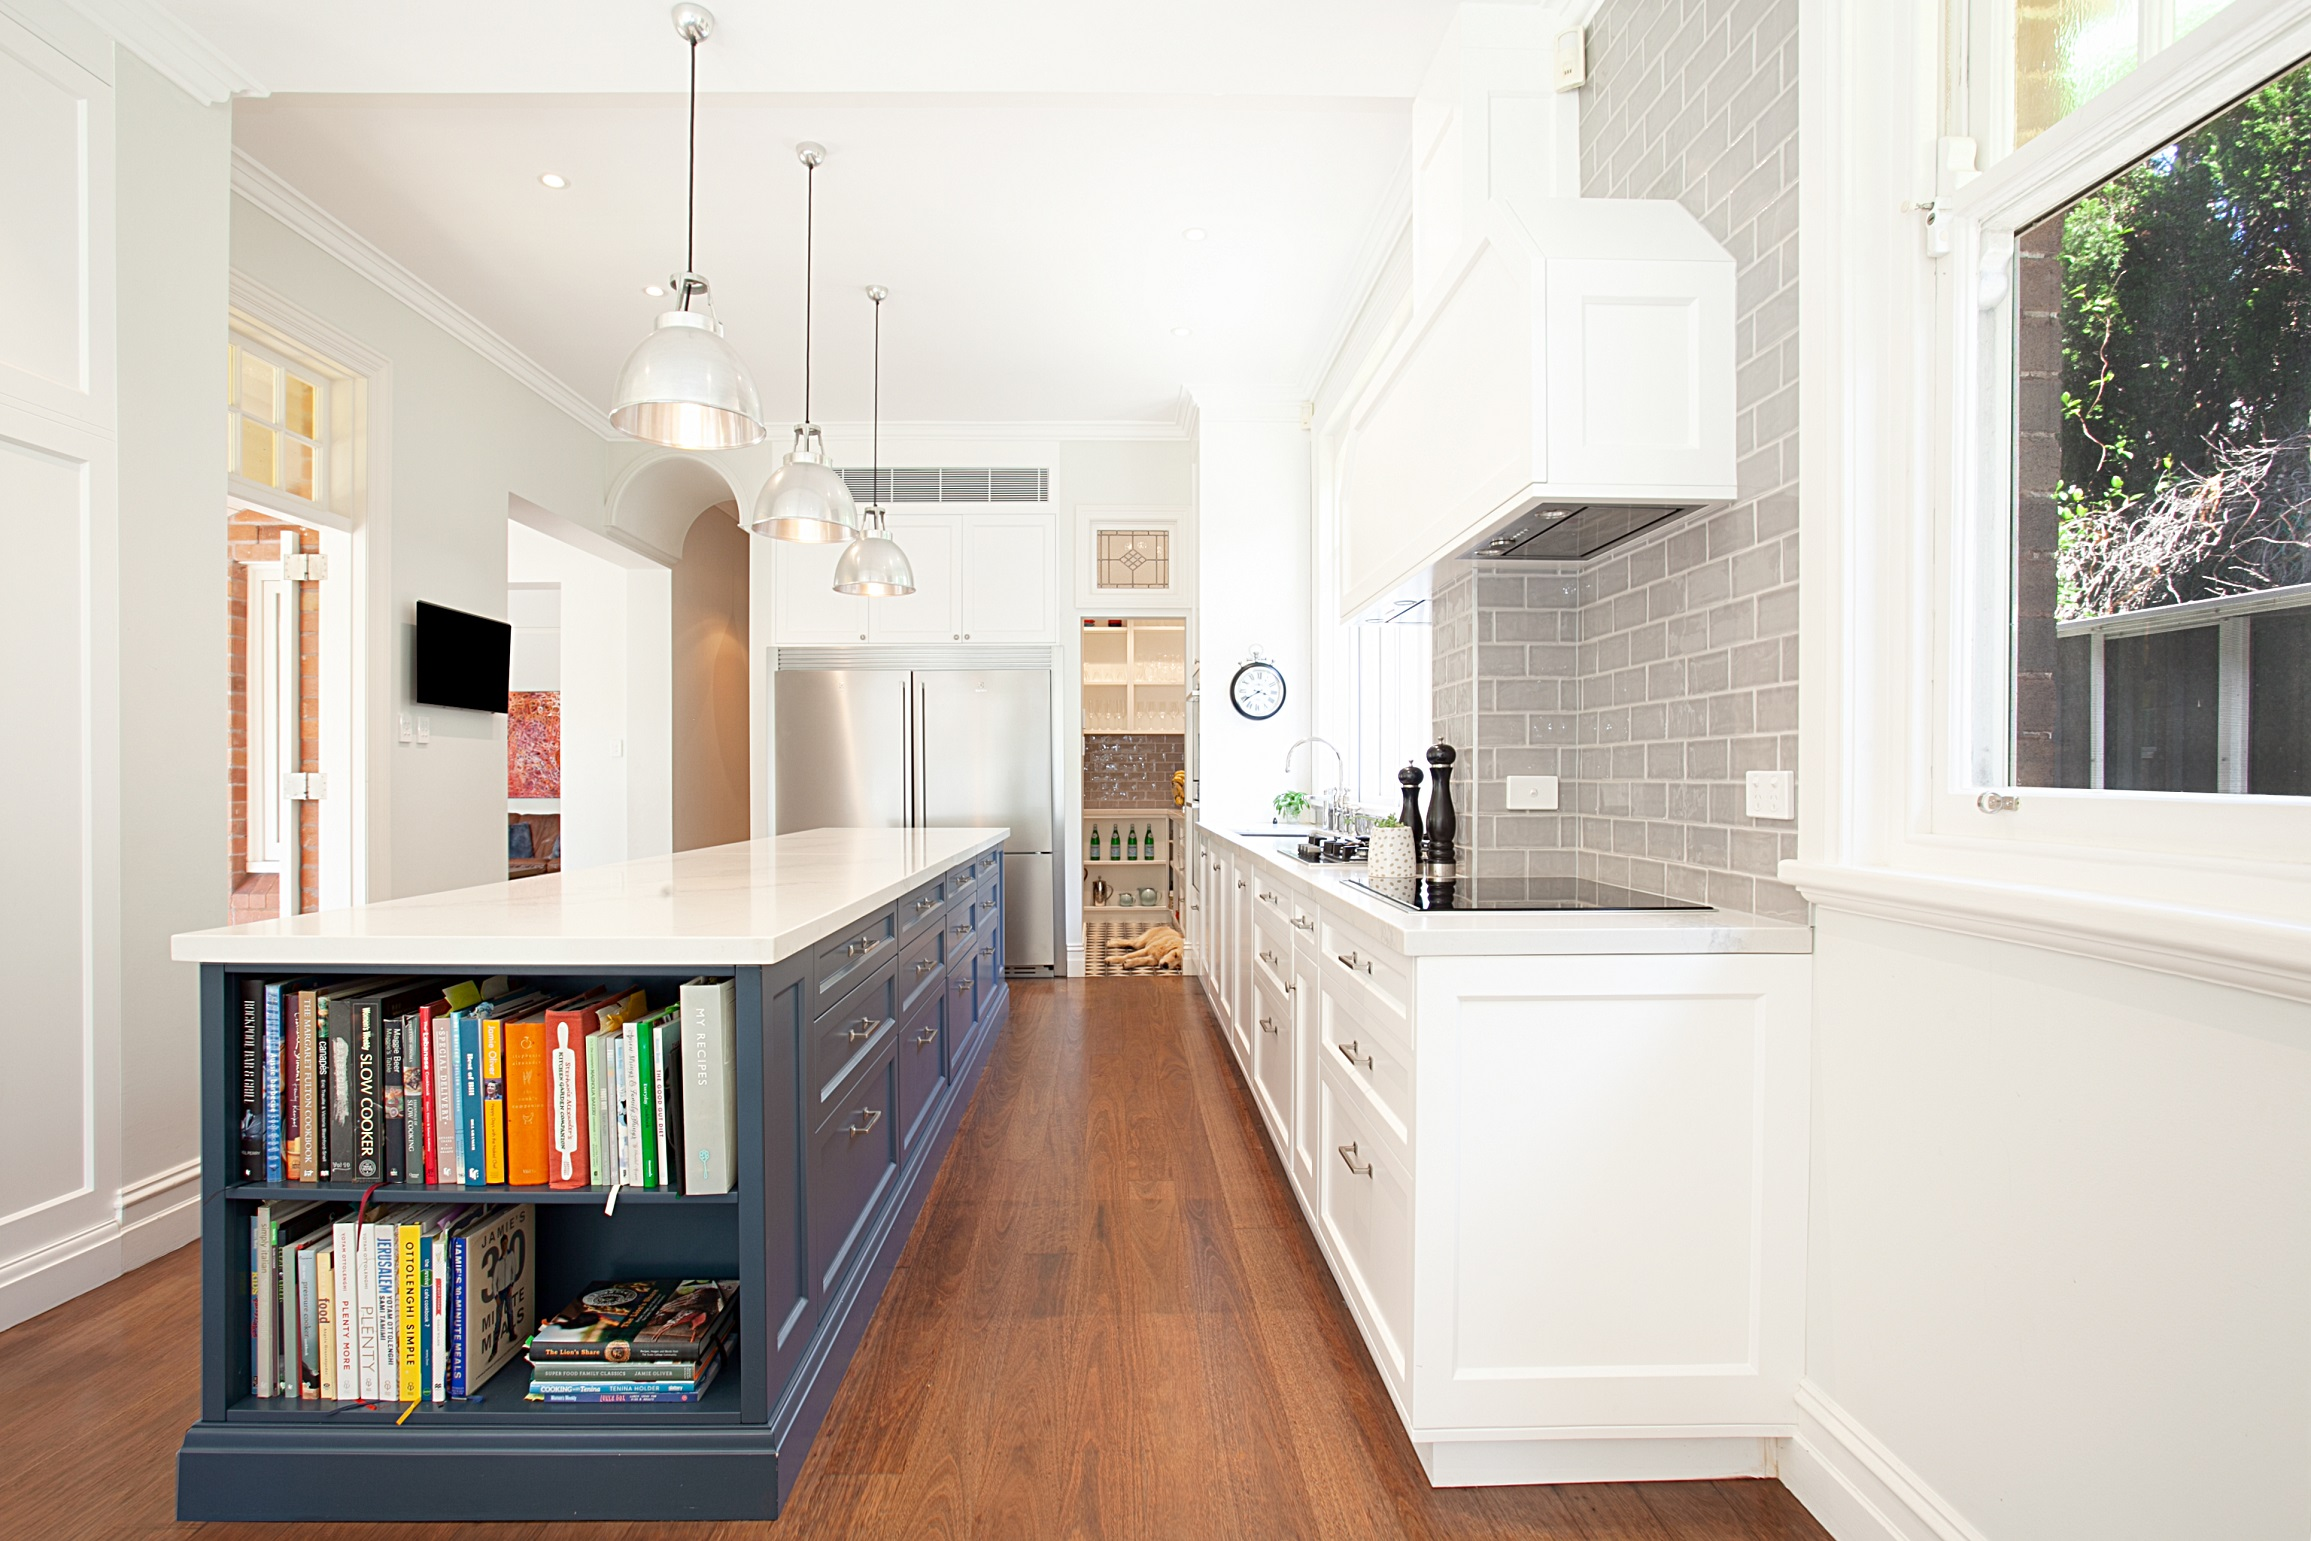 Heritage-Home-kitchen-renovation-storage-Michael-Bell-Architects-Sydney